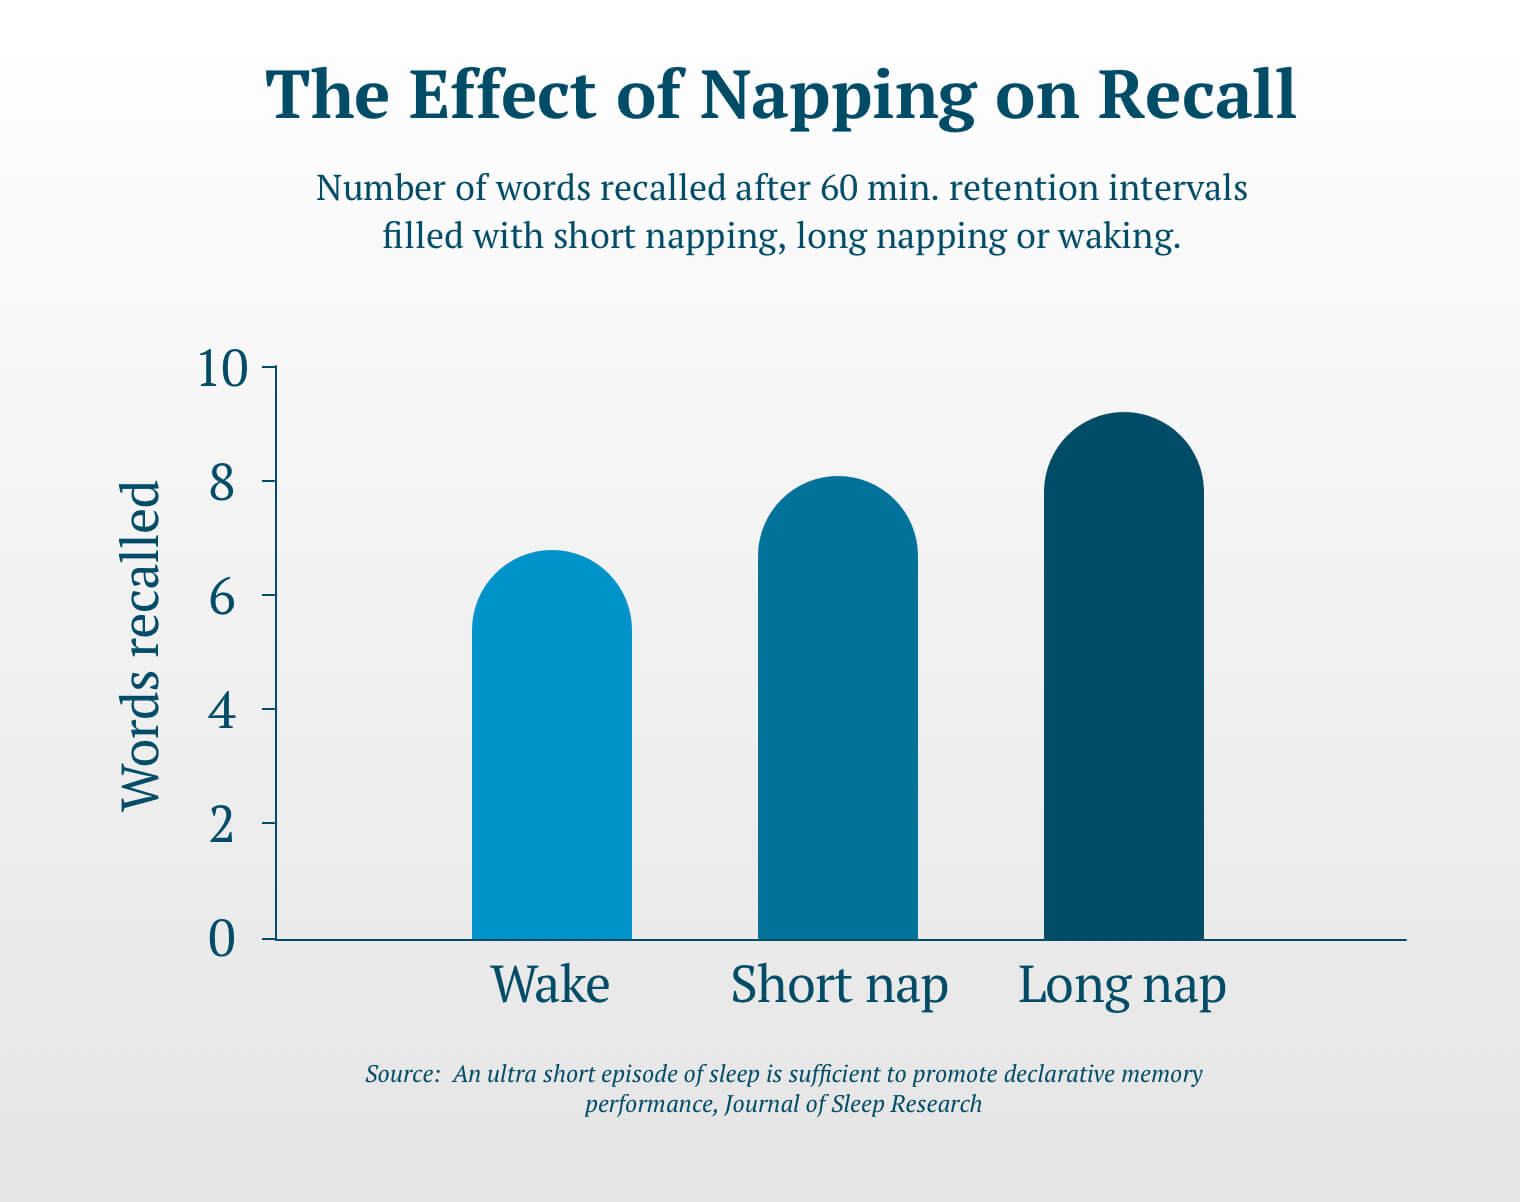 A small chart illustrating the improved performance in word recall of individuals who napped prior to re-testing. Vertical axis (y): Words recalled 0-10; Horizontal axis (x) Wake, Short nap, Long nap. Those who did not nap were able to recall on average 6 words after a 60 minute interval. Those who took a short nap during the 60 minute interval could recall an average of 8 words and those who tool a long nap recalled an average of 9 words. This data was published in the Journal of Sleep in the article, An ultra short episode of sleep is sufficient to promote declarative memory performance.